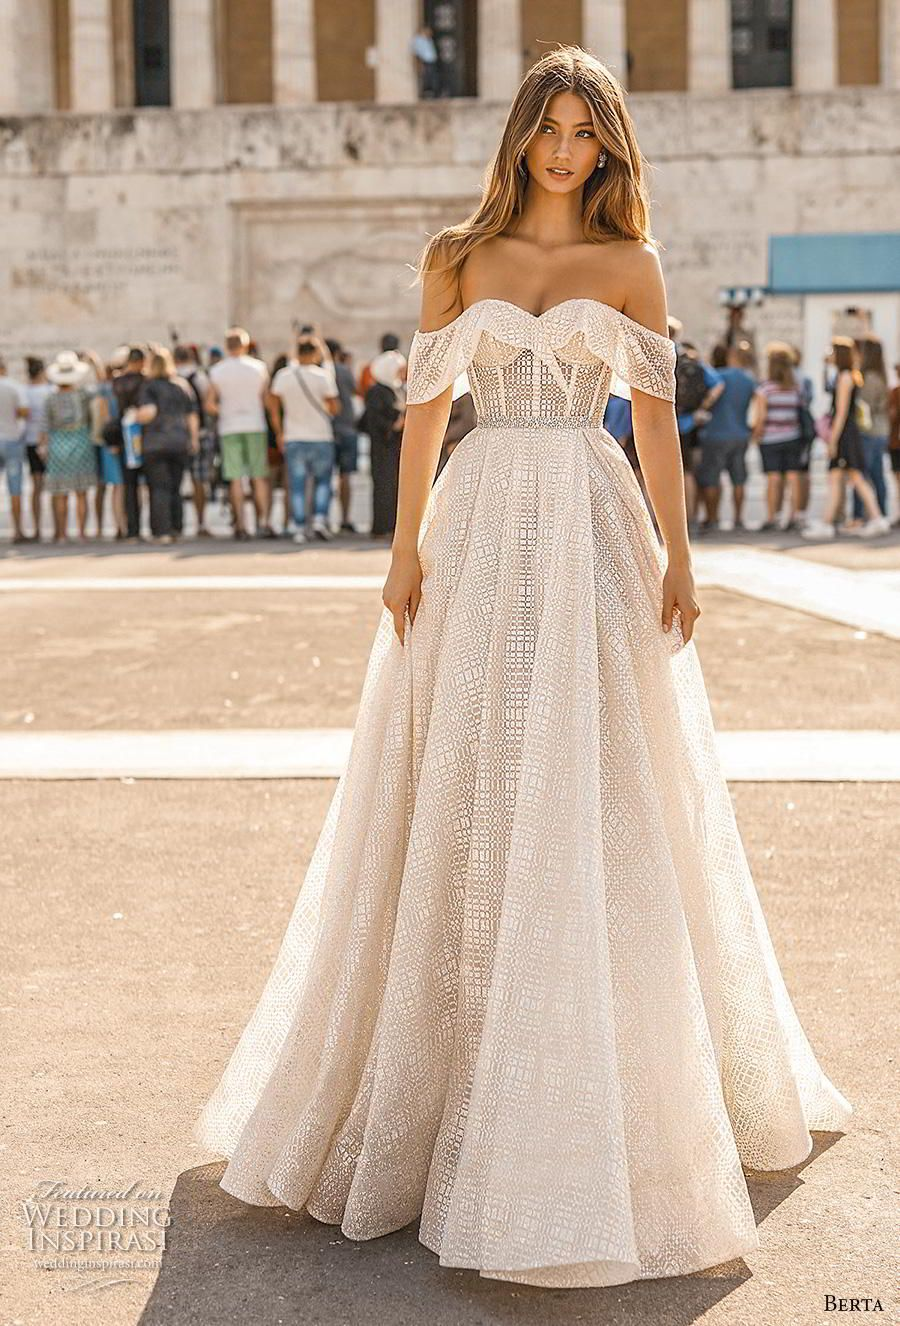 2861f1e325 Weddinginspirasi.com featuring - berta fall 2019 bridal off the shoulder  sweetheart neckline full embellishment romantic a line wedding dress mid  back short ...